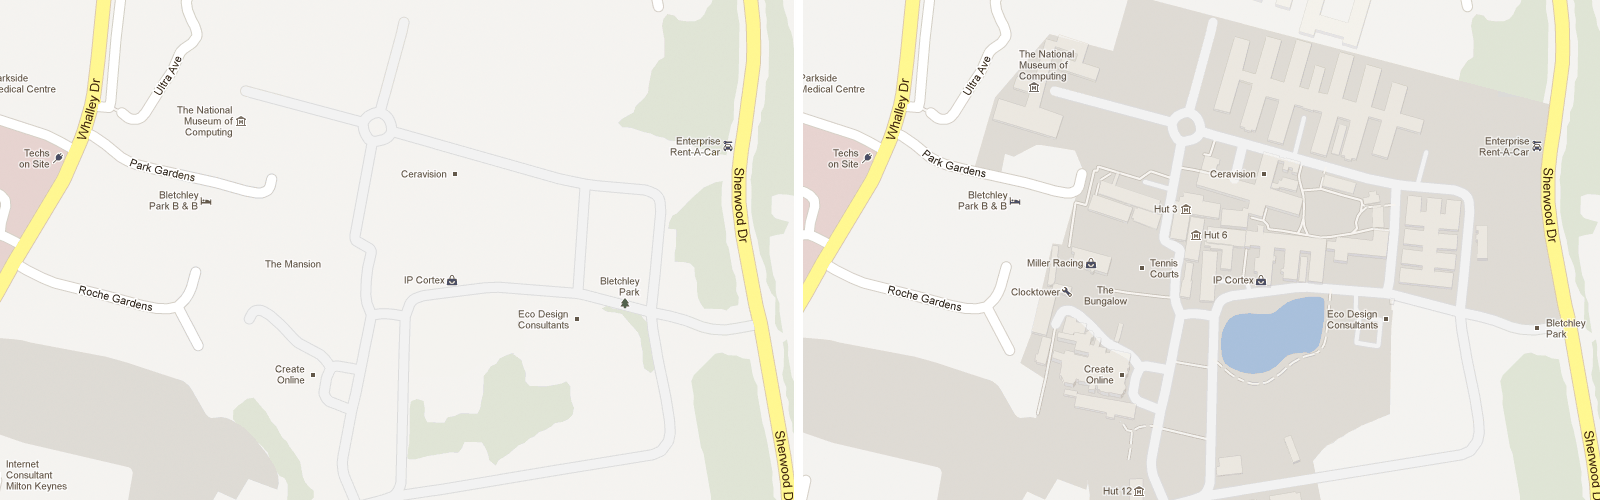 bletchley-before-after-Google-Map-Maker